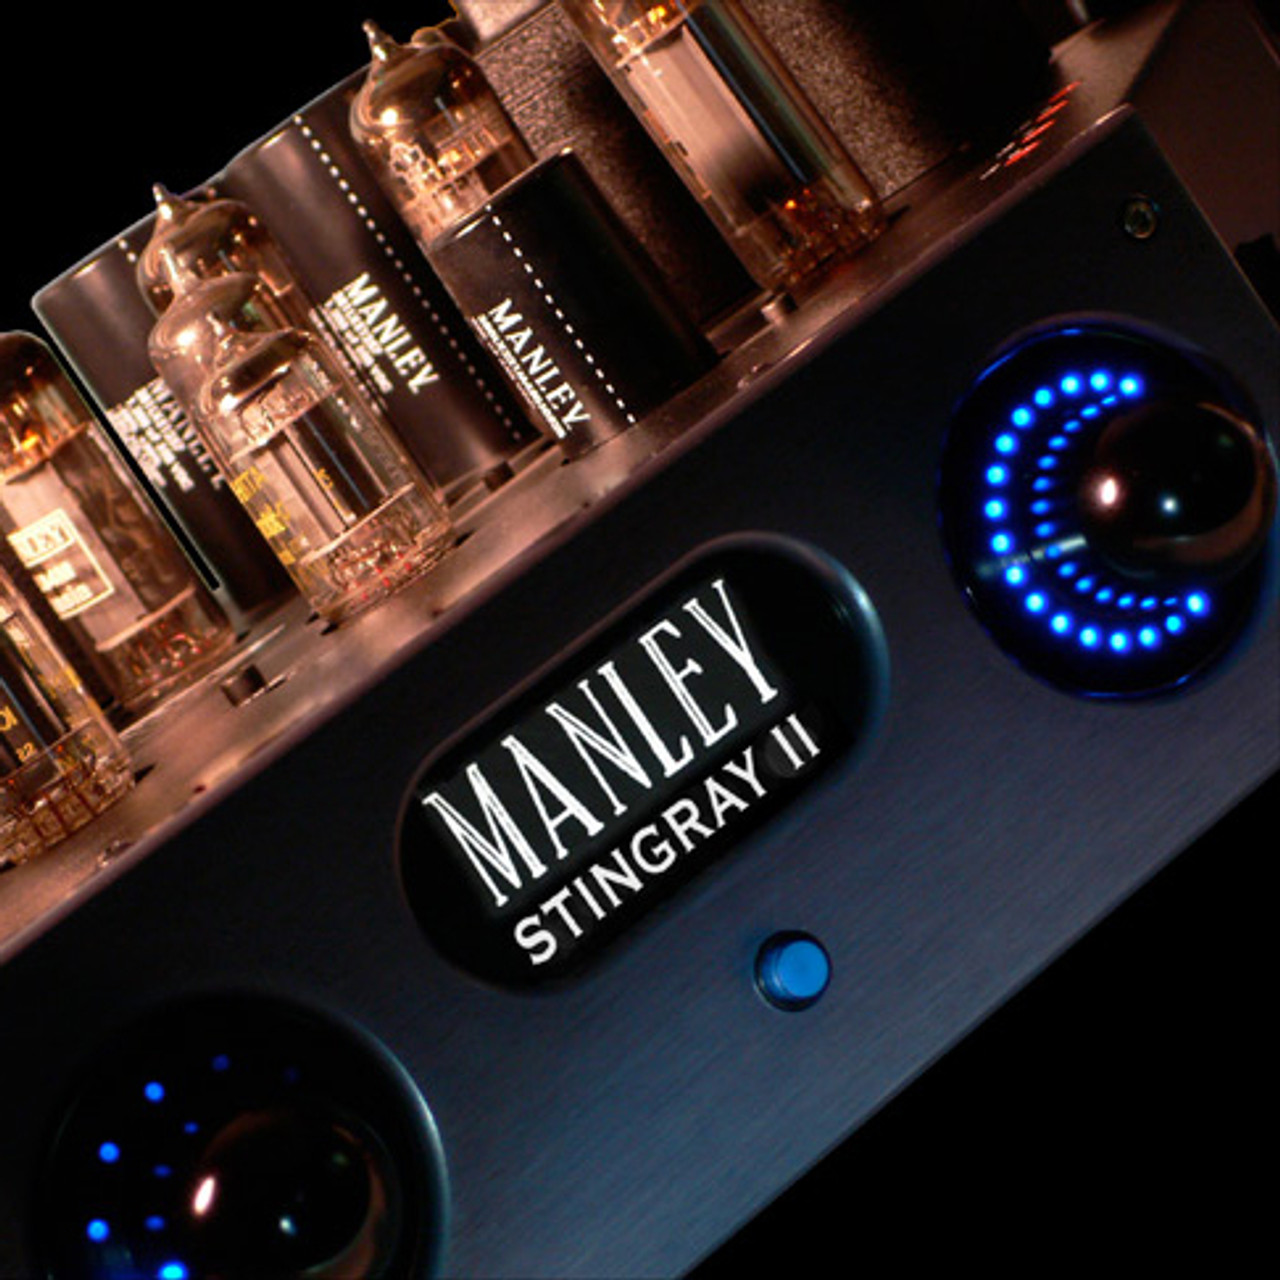 Manley Stingray II stereo integrated amplifier